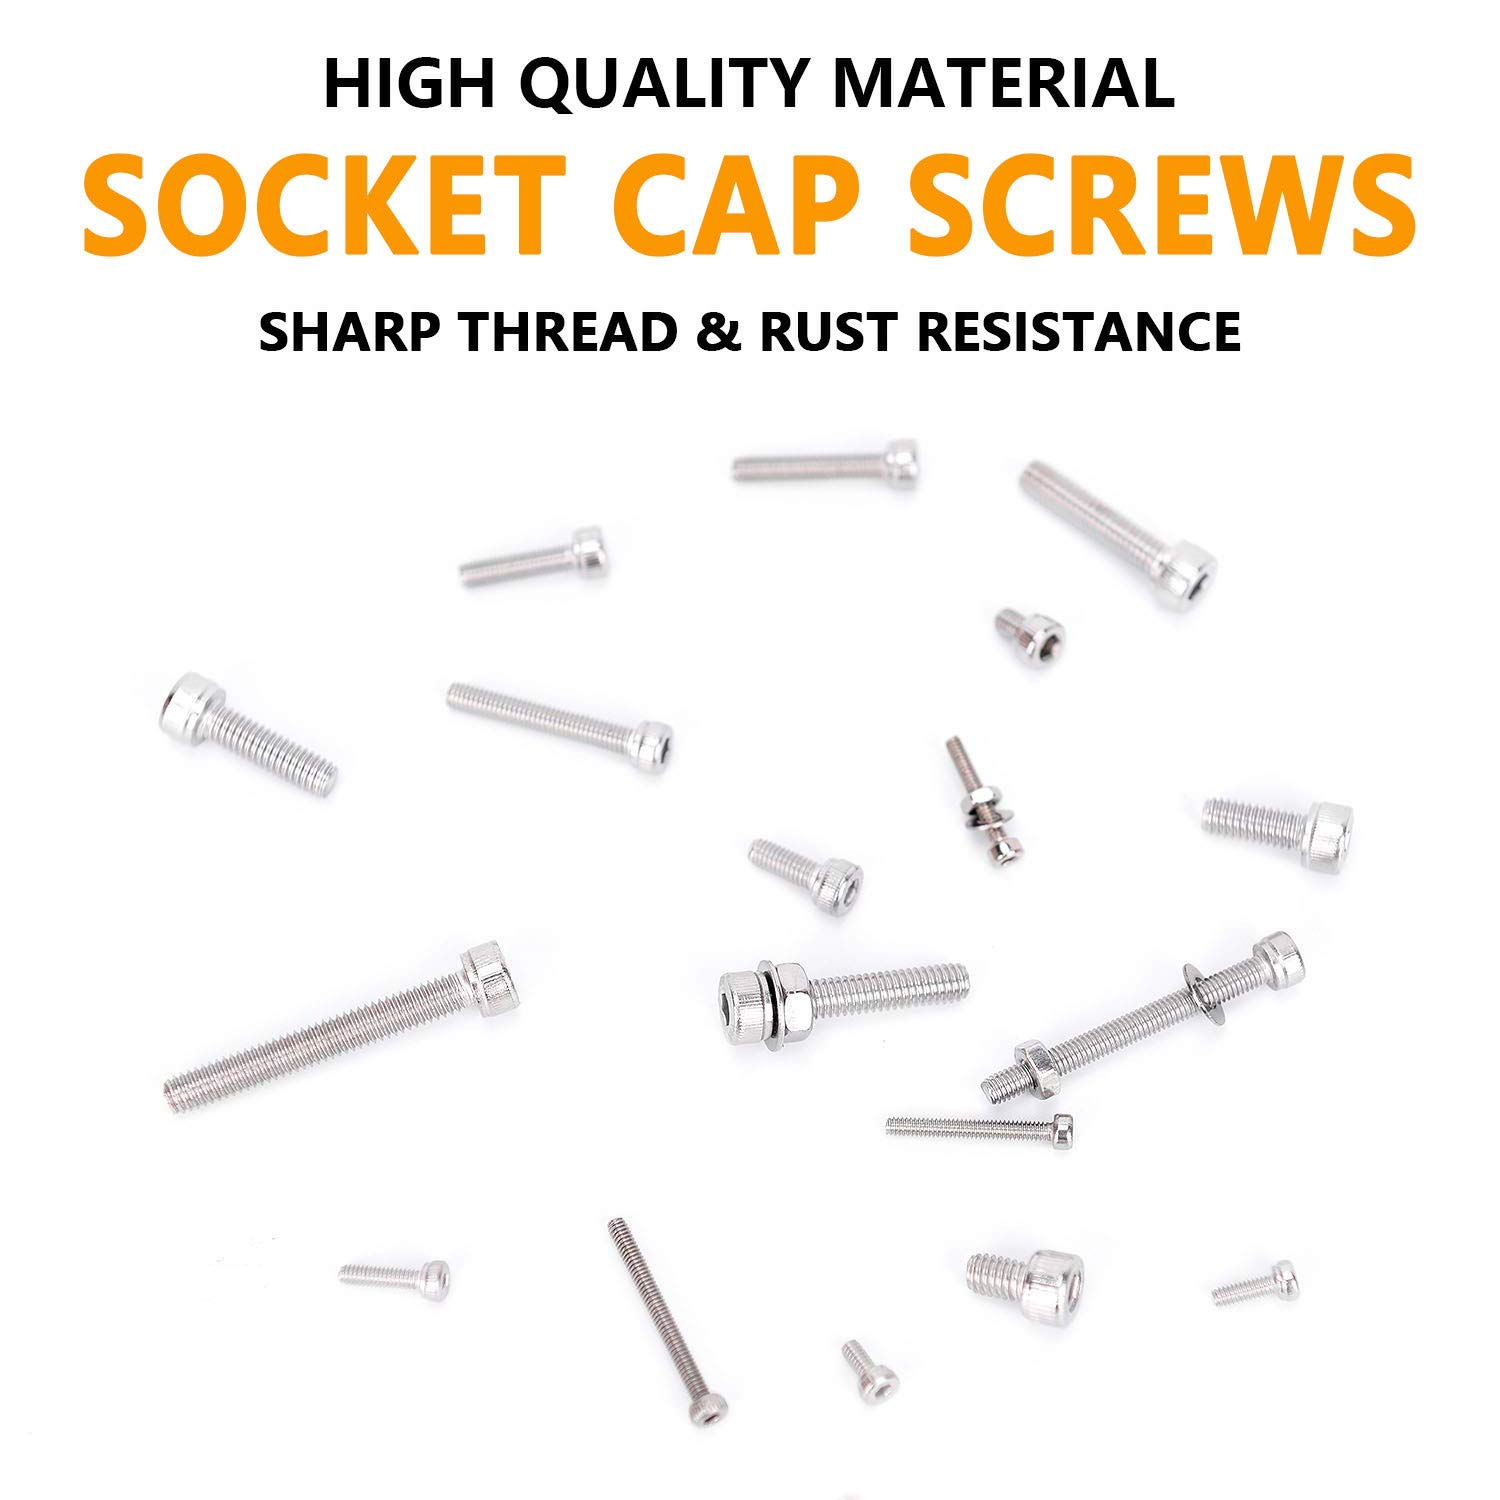 Anlizn M2 M3 M4 Stainless Steel Hex Socket Head Cap Screws Nuts Set 1080pcs Assortment Kit with Storage Box Six Hex Wrenches Included Silver